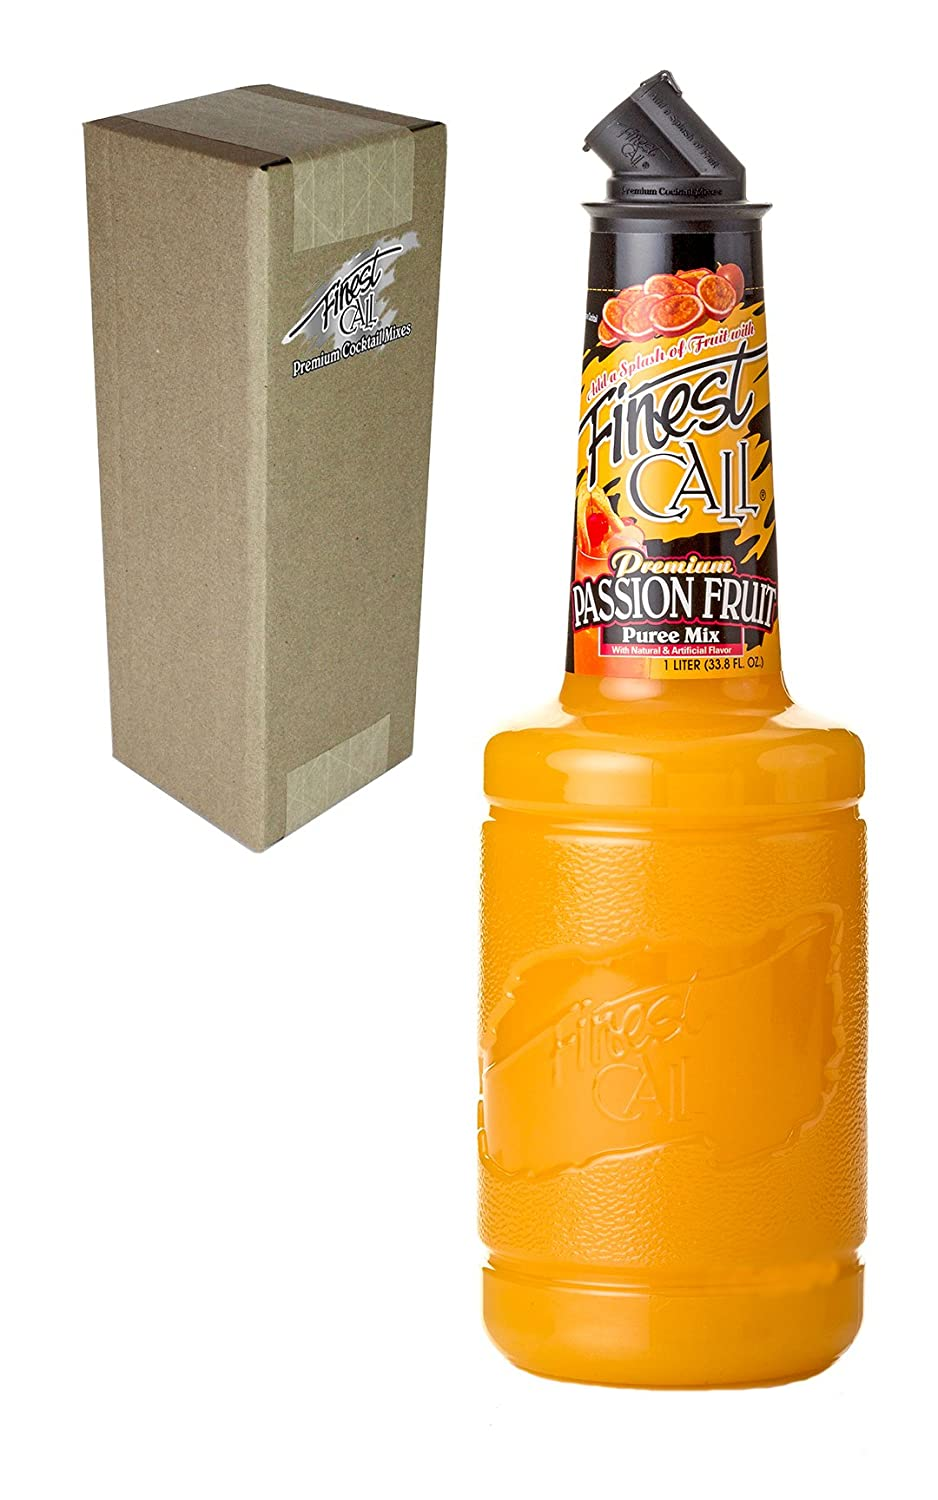 Finest Call Premium Passion Fruit Puree Drink Mix, 1 Liter Bottle (33.8 Fl Oz), Individually Boxed